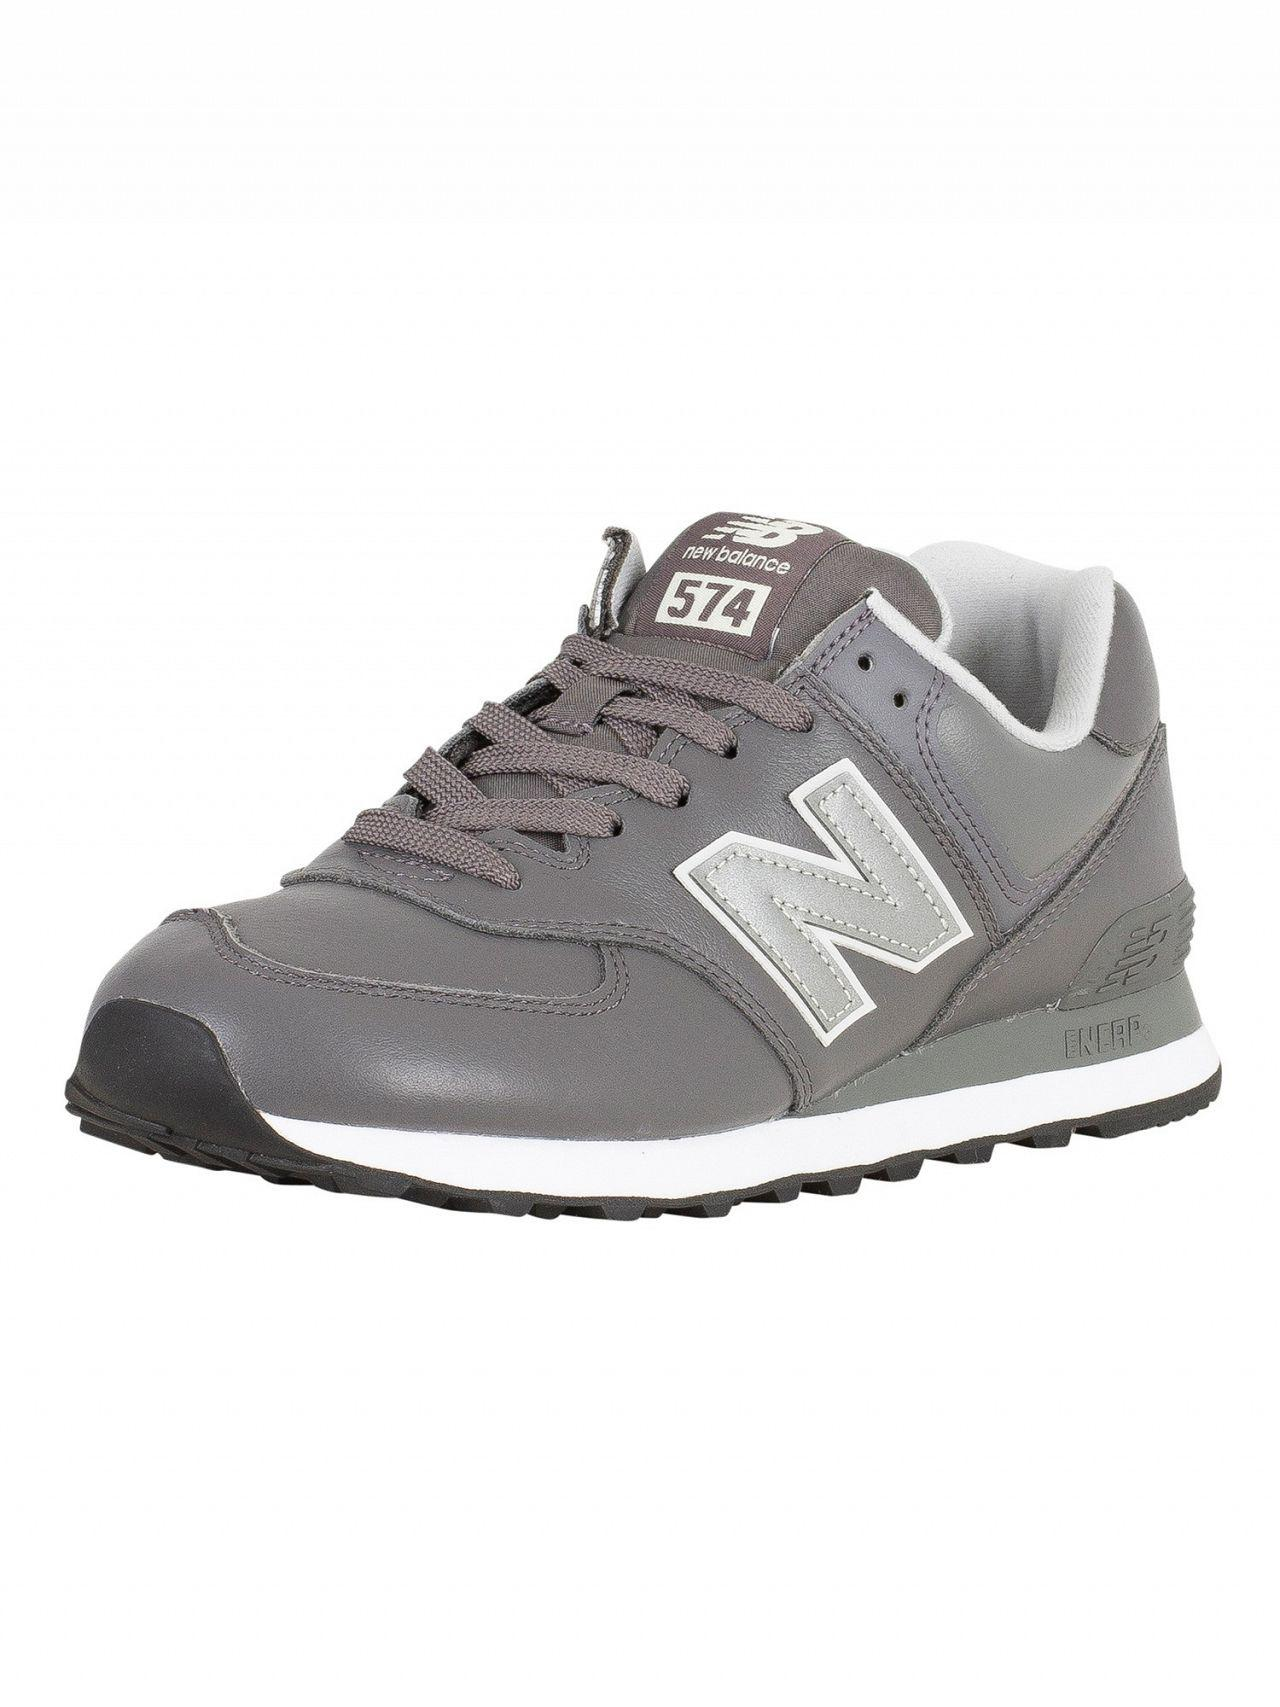 New Balance Grey 574 Leather Trainers in Gray for Men - Lyst